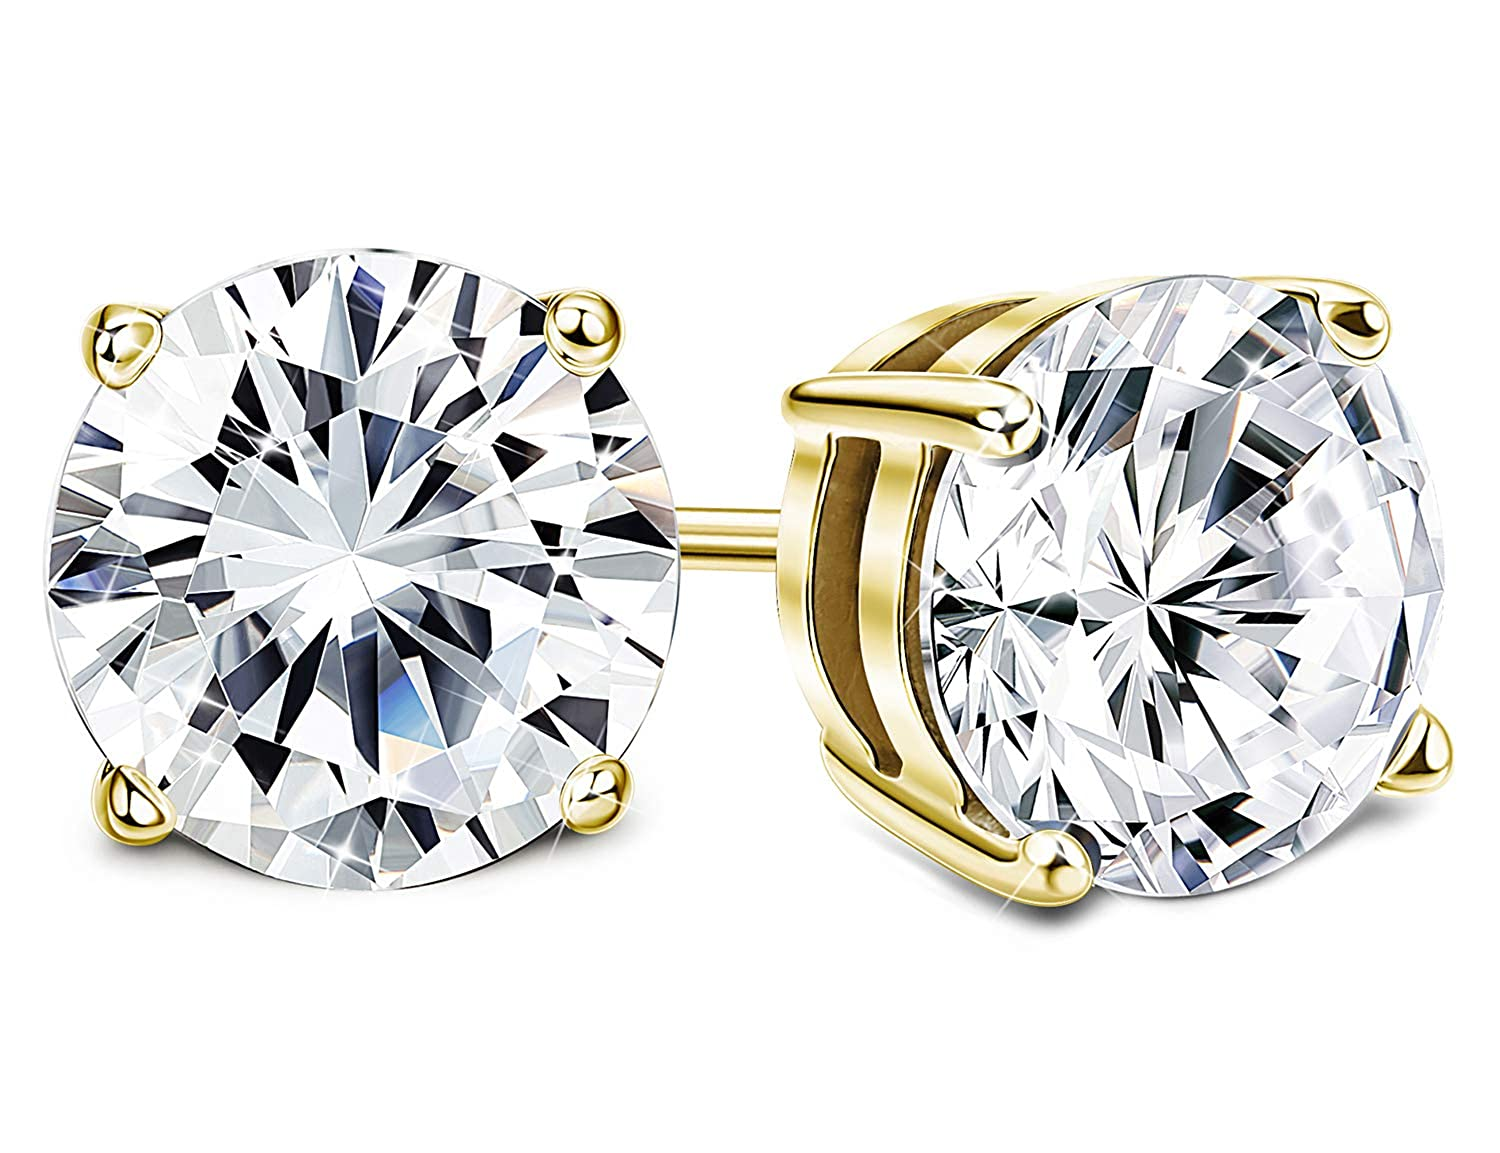 44f5c893 Sllaiss Set with Swarovski Zirconia Stud Earrings for Women Made of  Sterling Silver Round-Cut 4-Prongs CZ 1.00cttw~8.00cttw Hypoallergenic